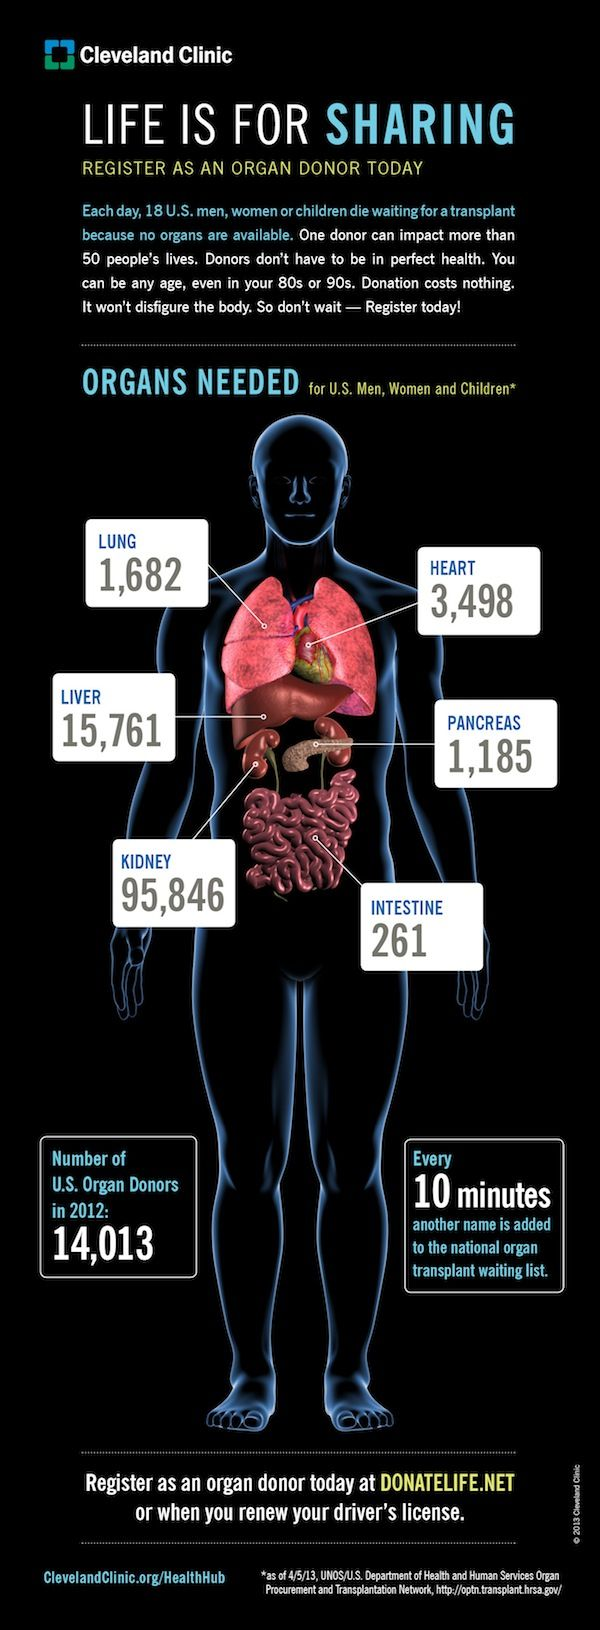 One donor can benefit 50 people. Every 10 minutes, a new person adds his or her name to the national waiting list for an organ transplant.